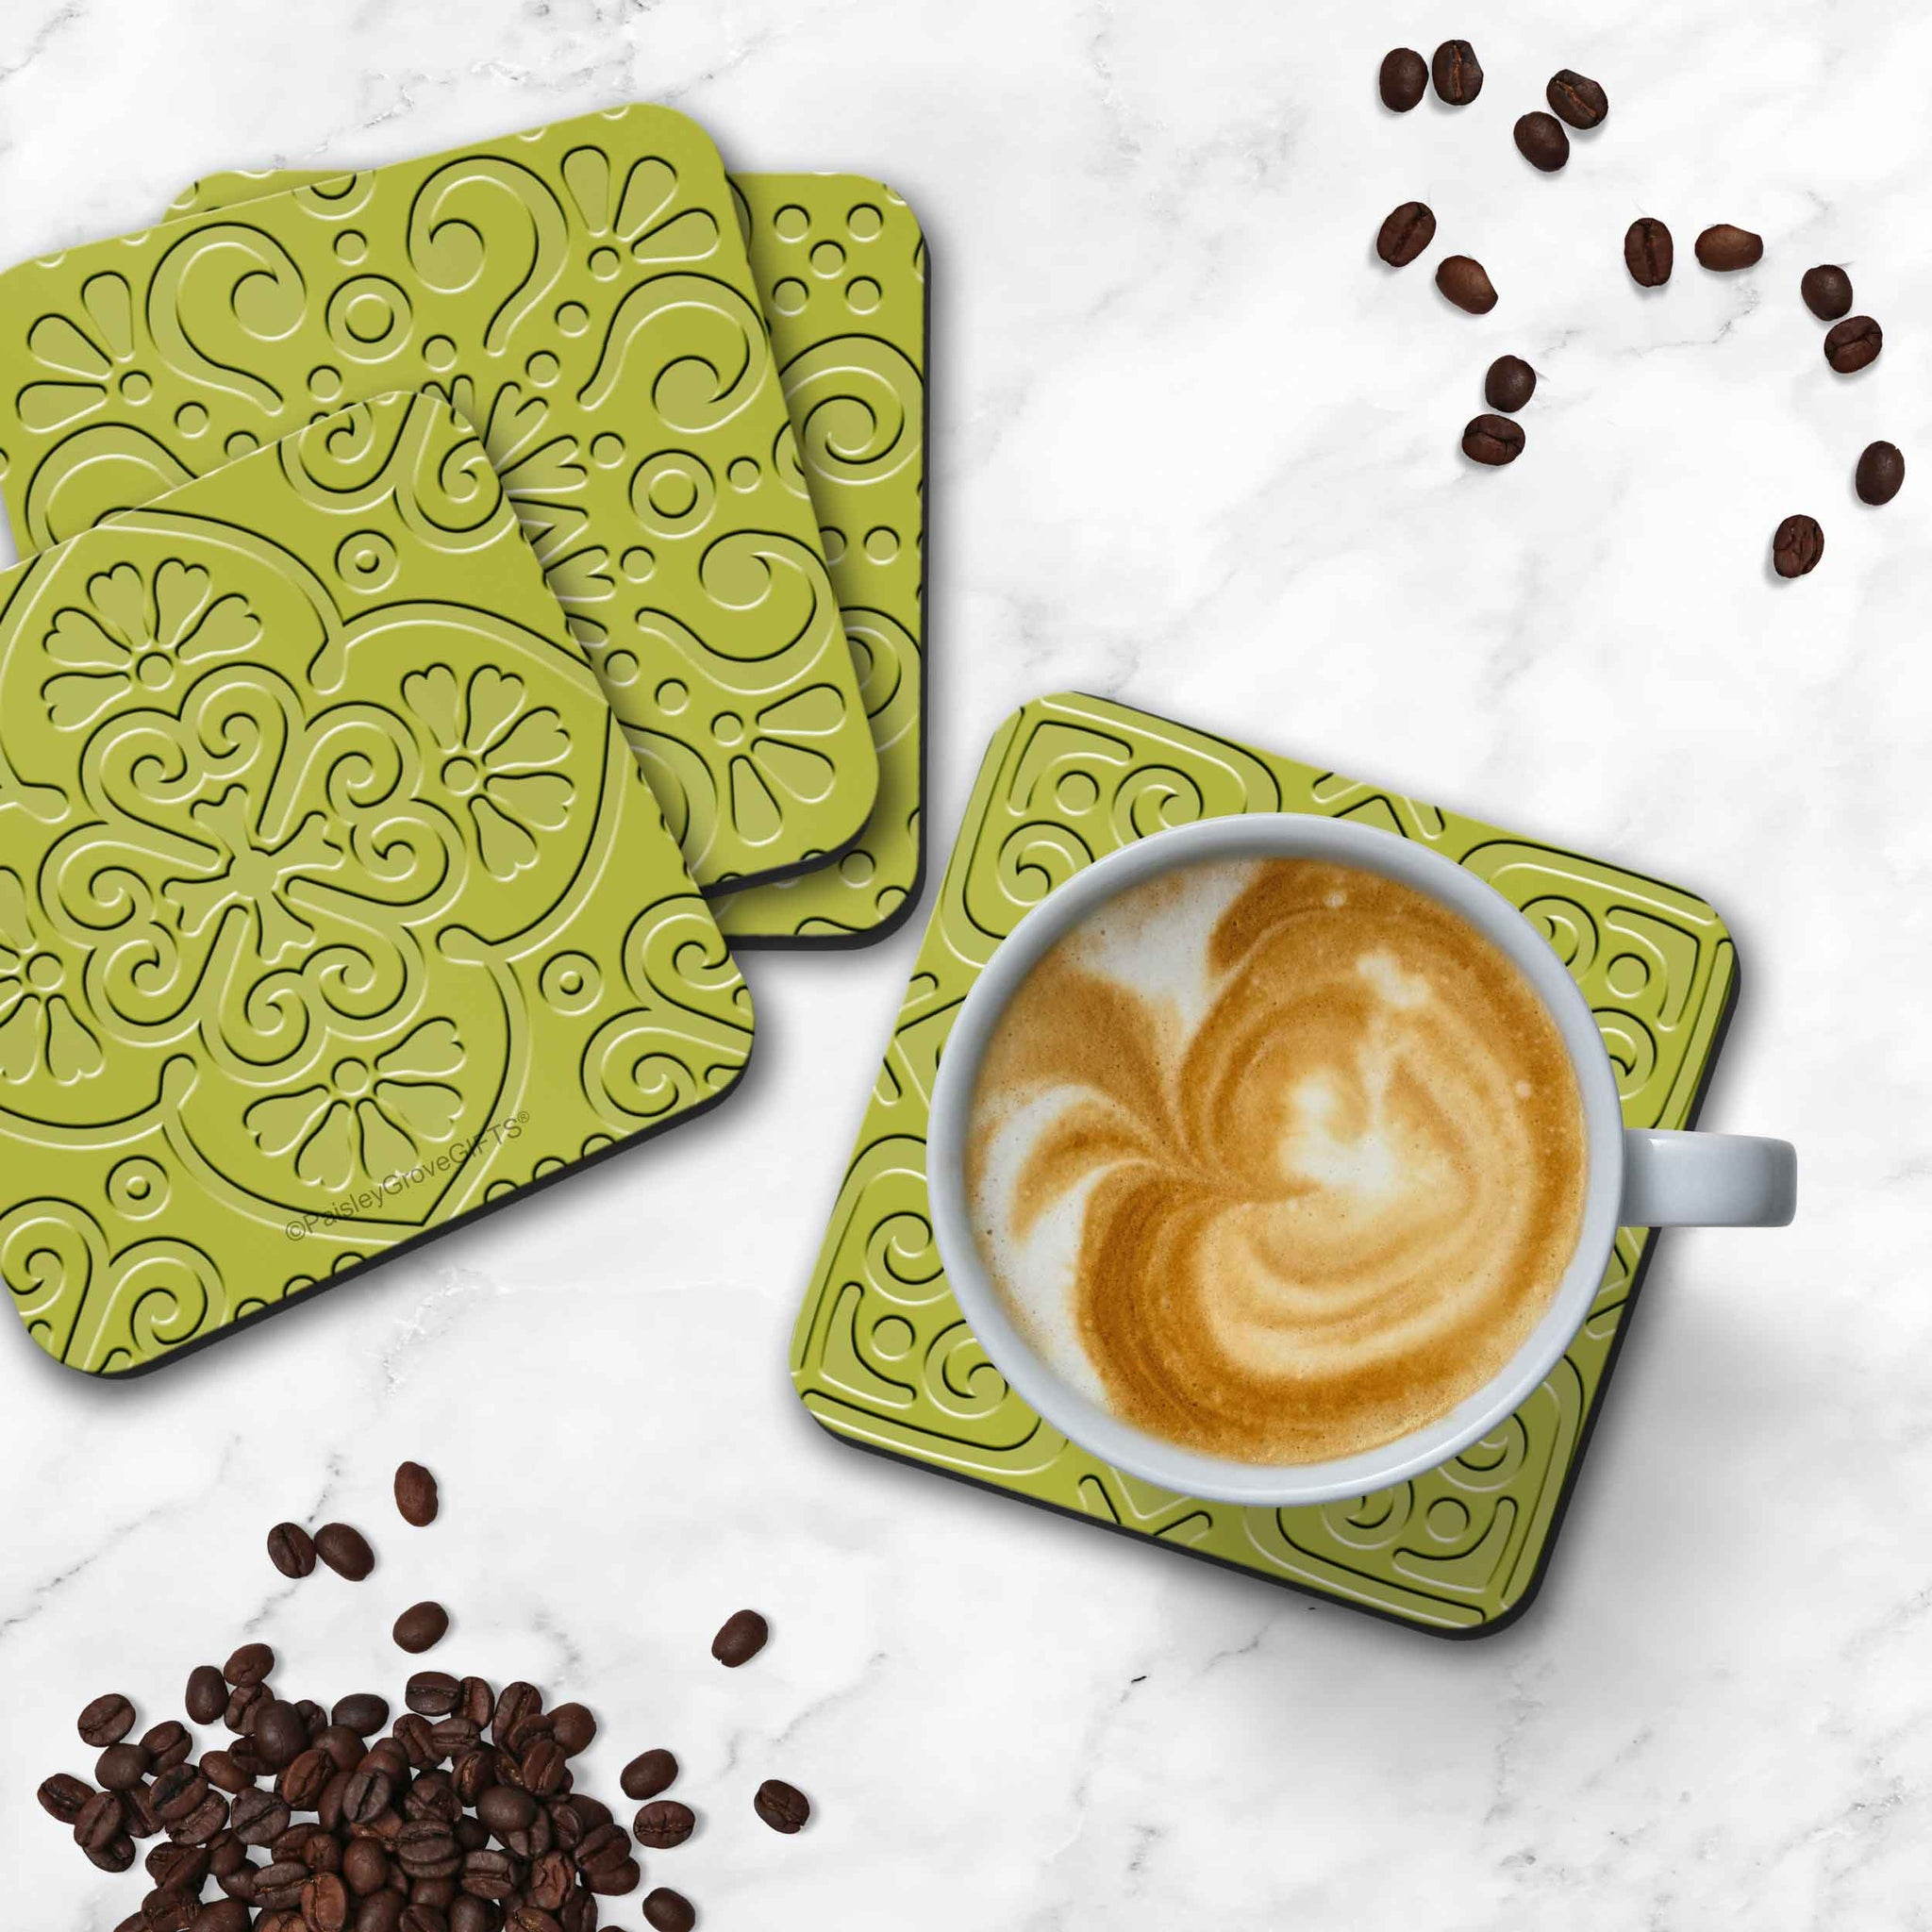 CopyrightPaisleyGroveGIFTS S706b Set of 4 Modern Decor Coasters with Cork Backing Table Protection Bright Green Colors